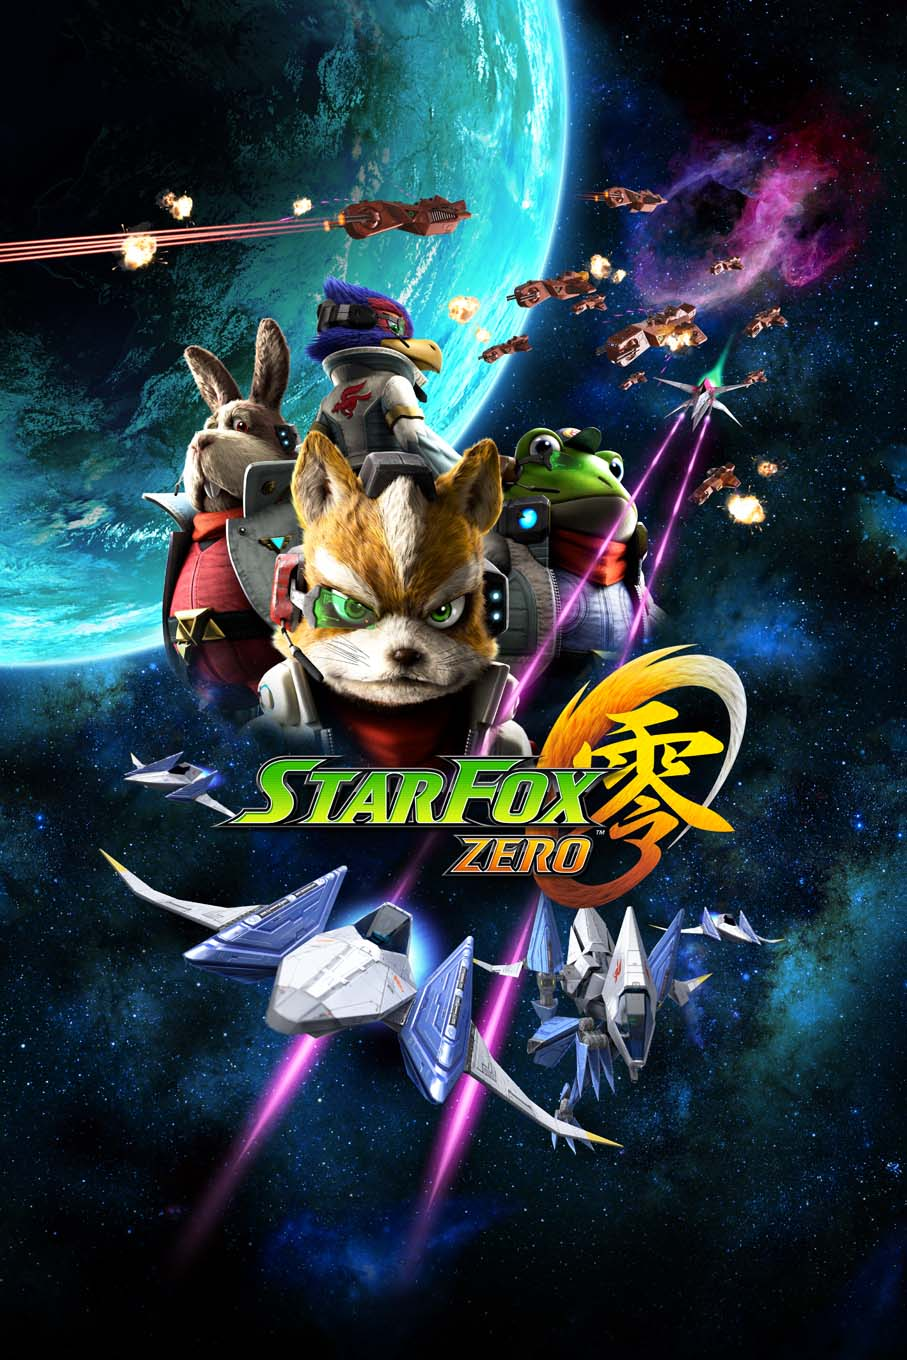 star fox zero new trailer release dates artworks and